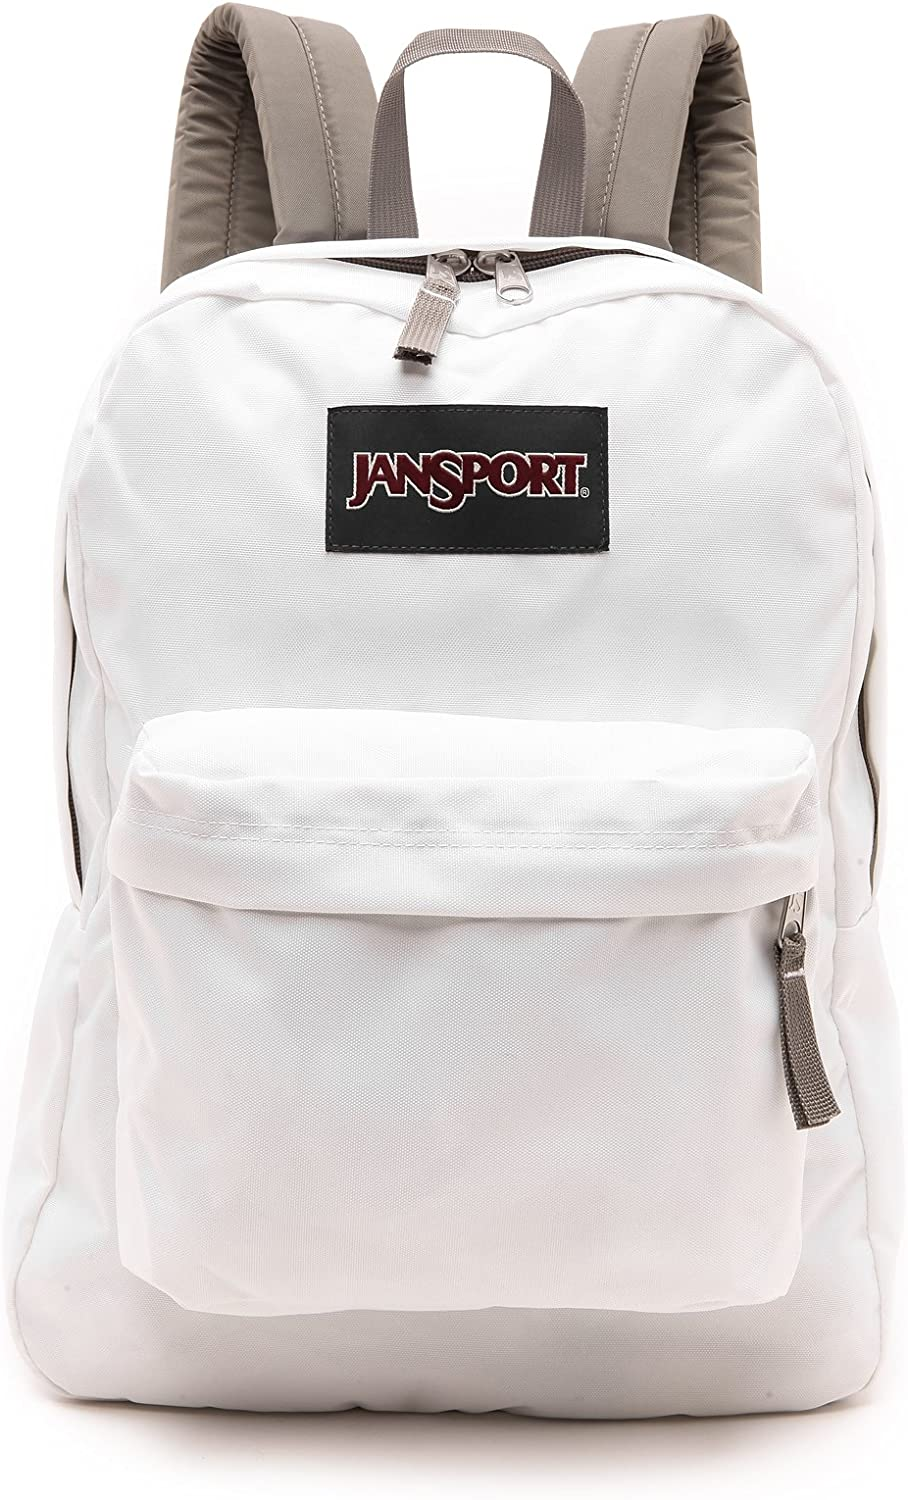 JanSport Superbreak Backpack White Grey